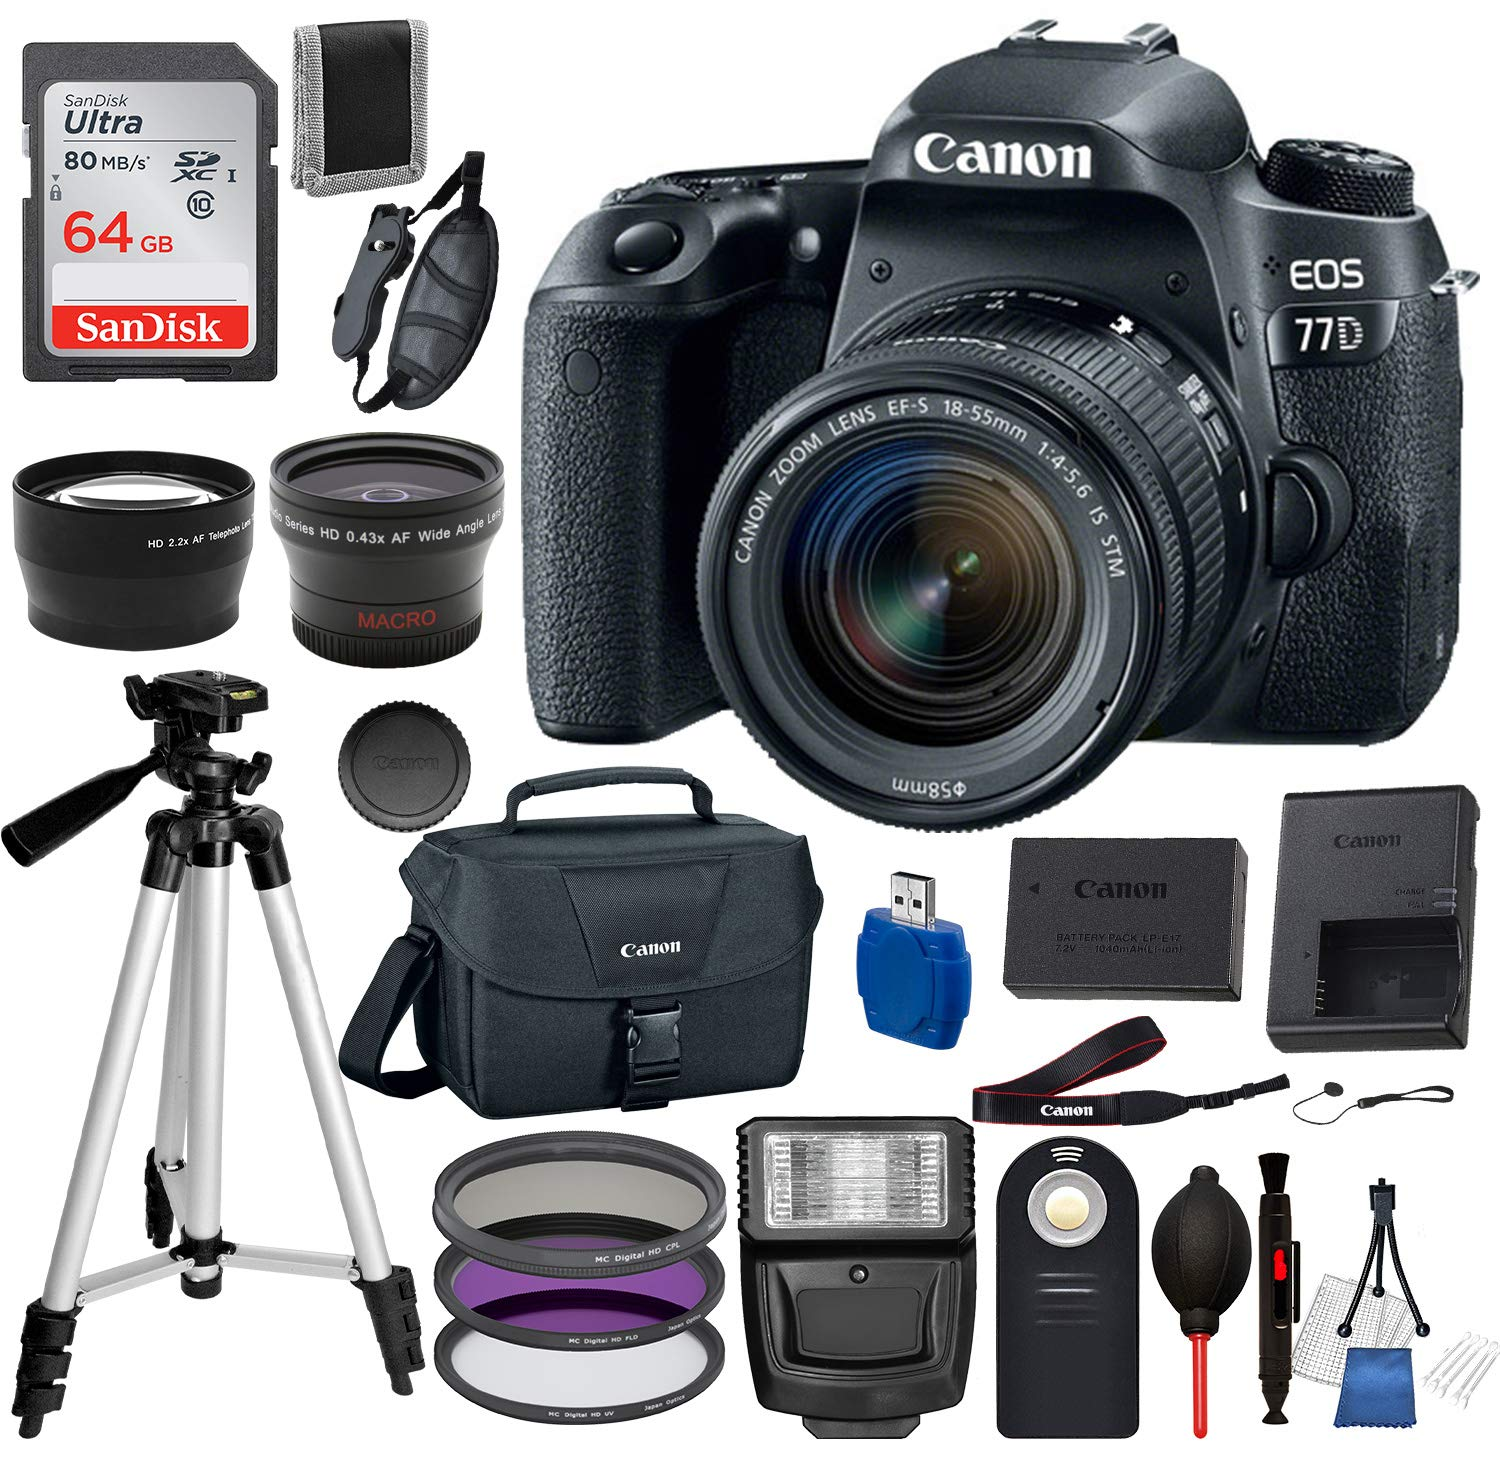 Canon EOS 77D Digital SLR Camera with EF-S 18-55mm IS STM USA (Black) 19PC Professional Bundle